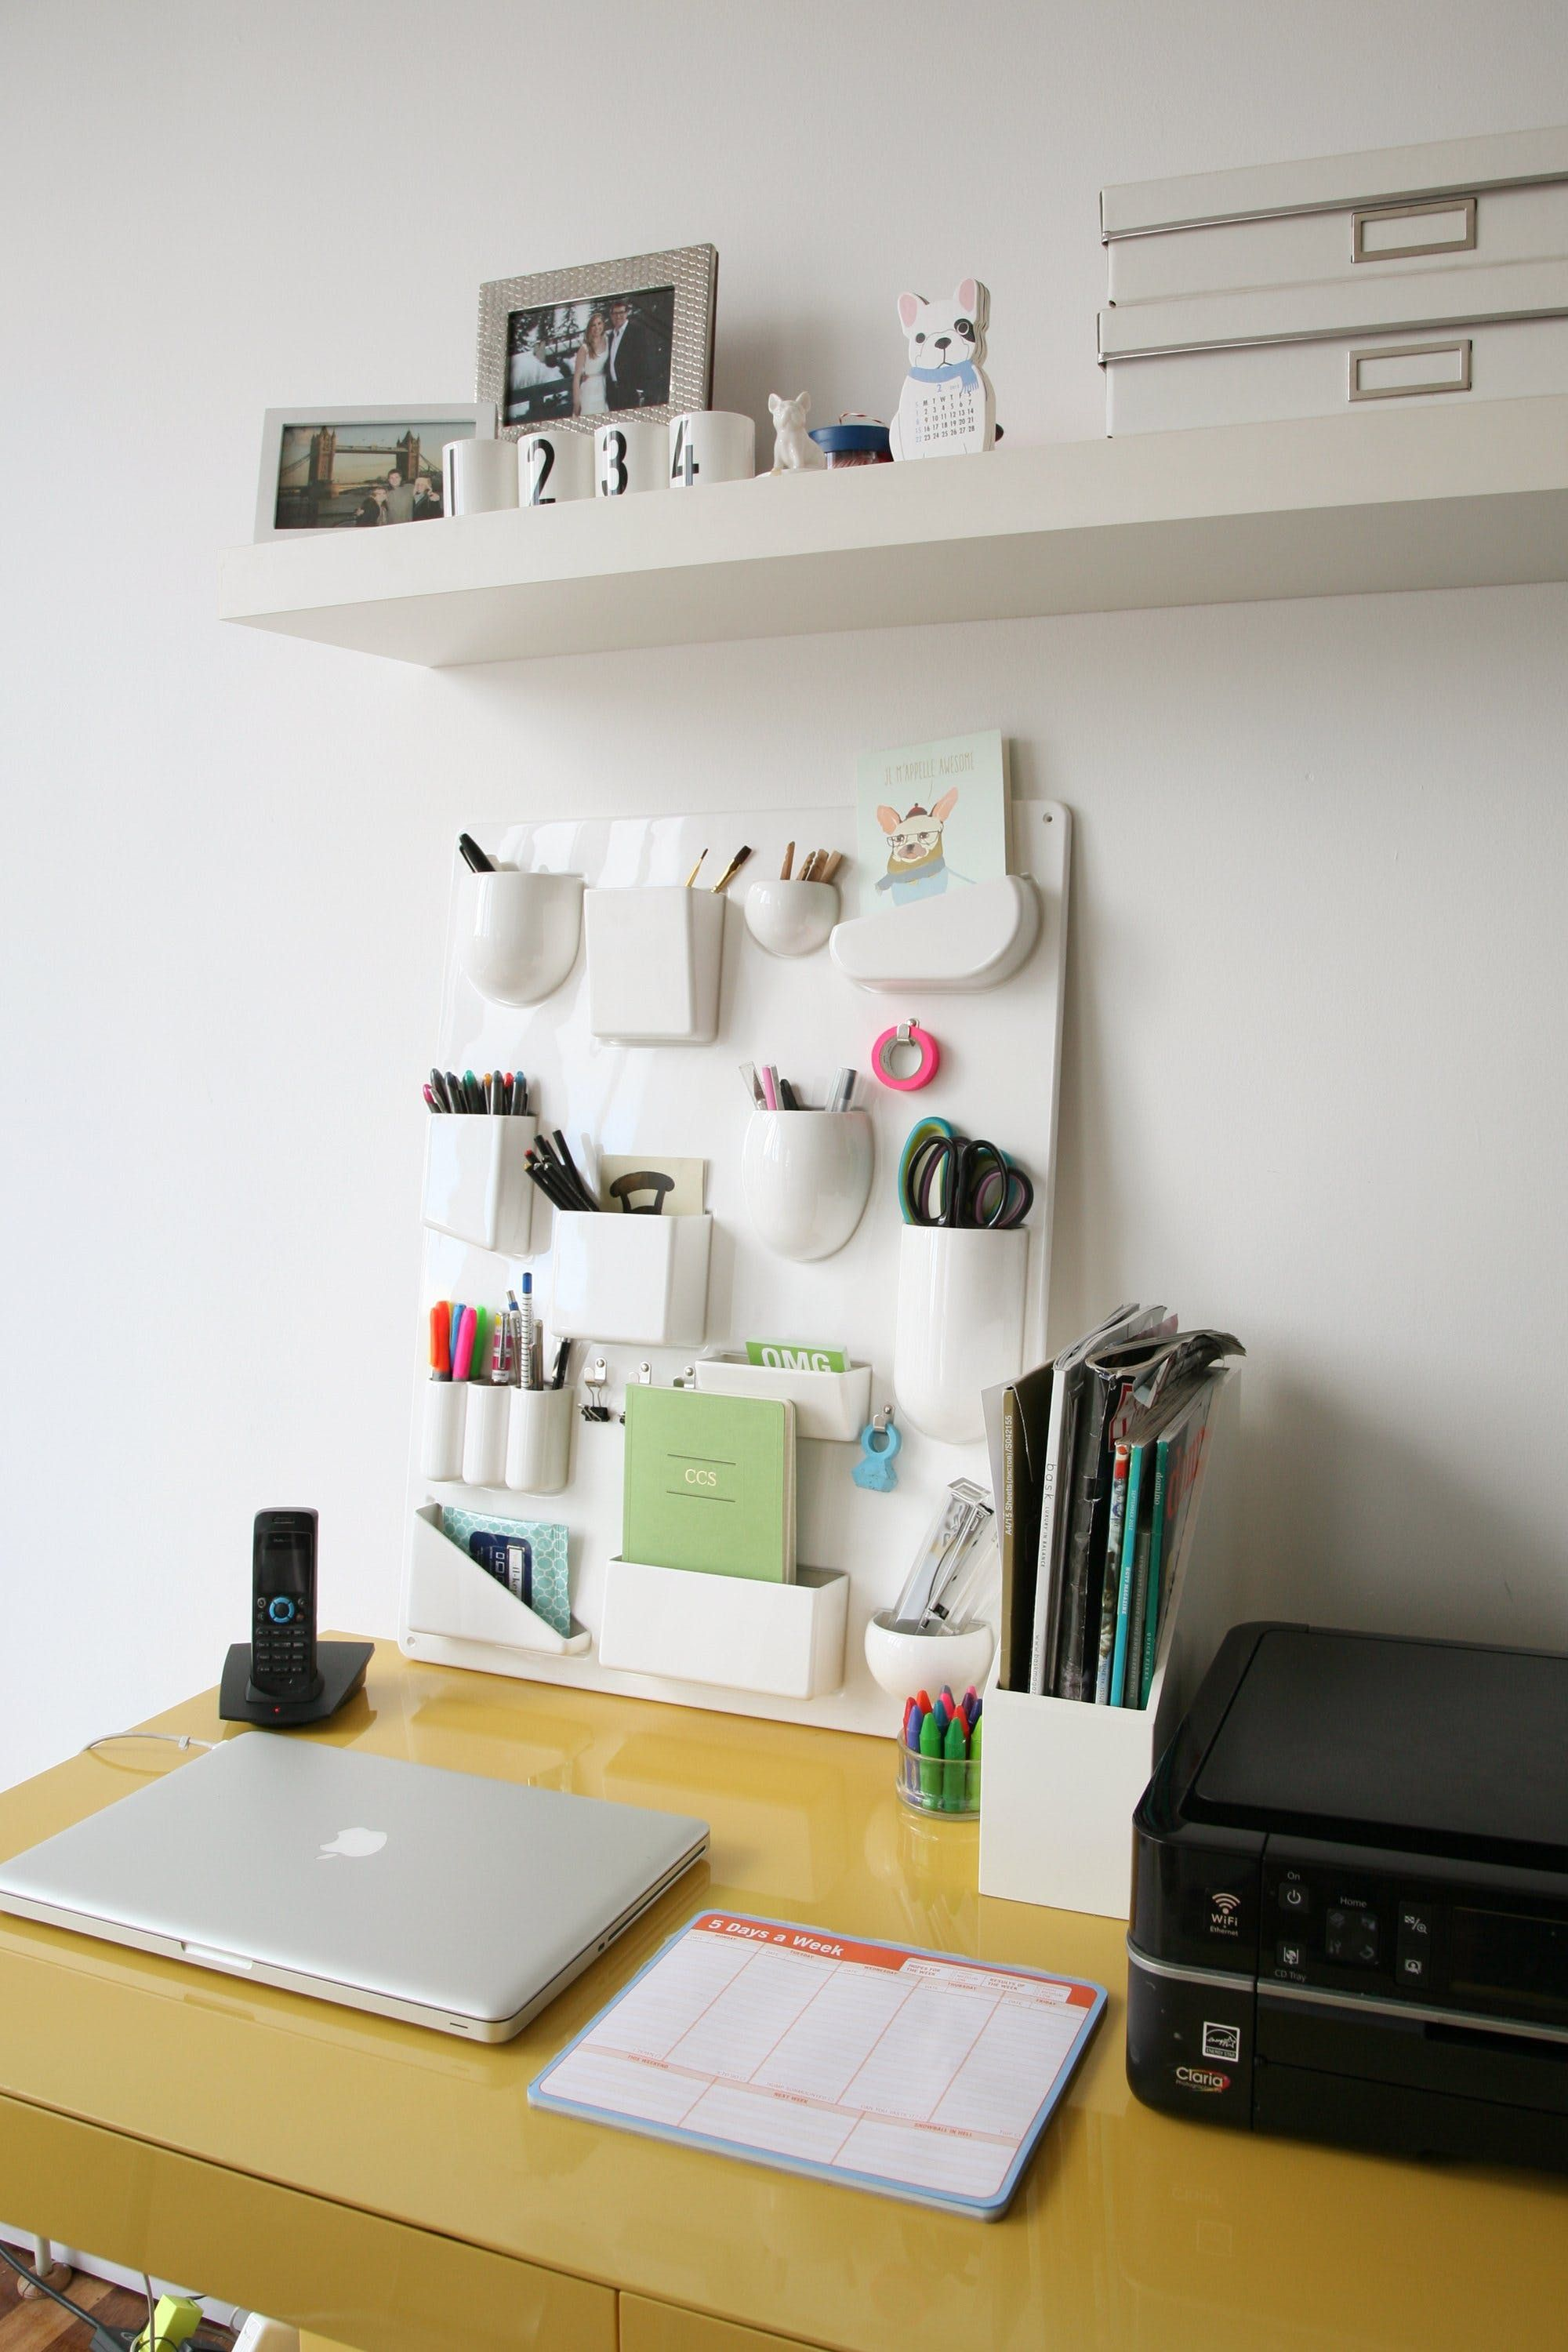 5 Ways To Organize A Desk Without Drawers Home Office Organization Office Supply Organization Desk Organization